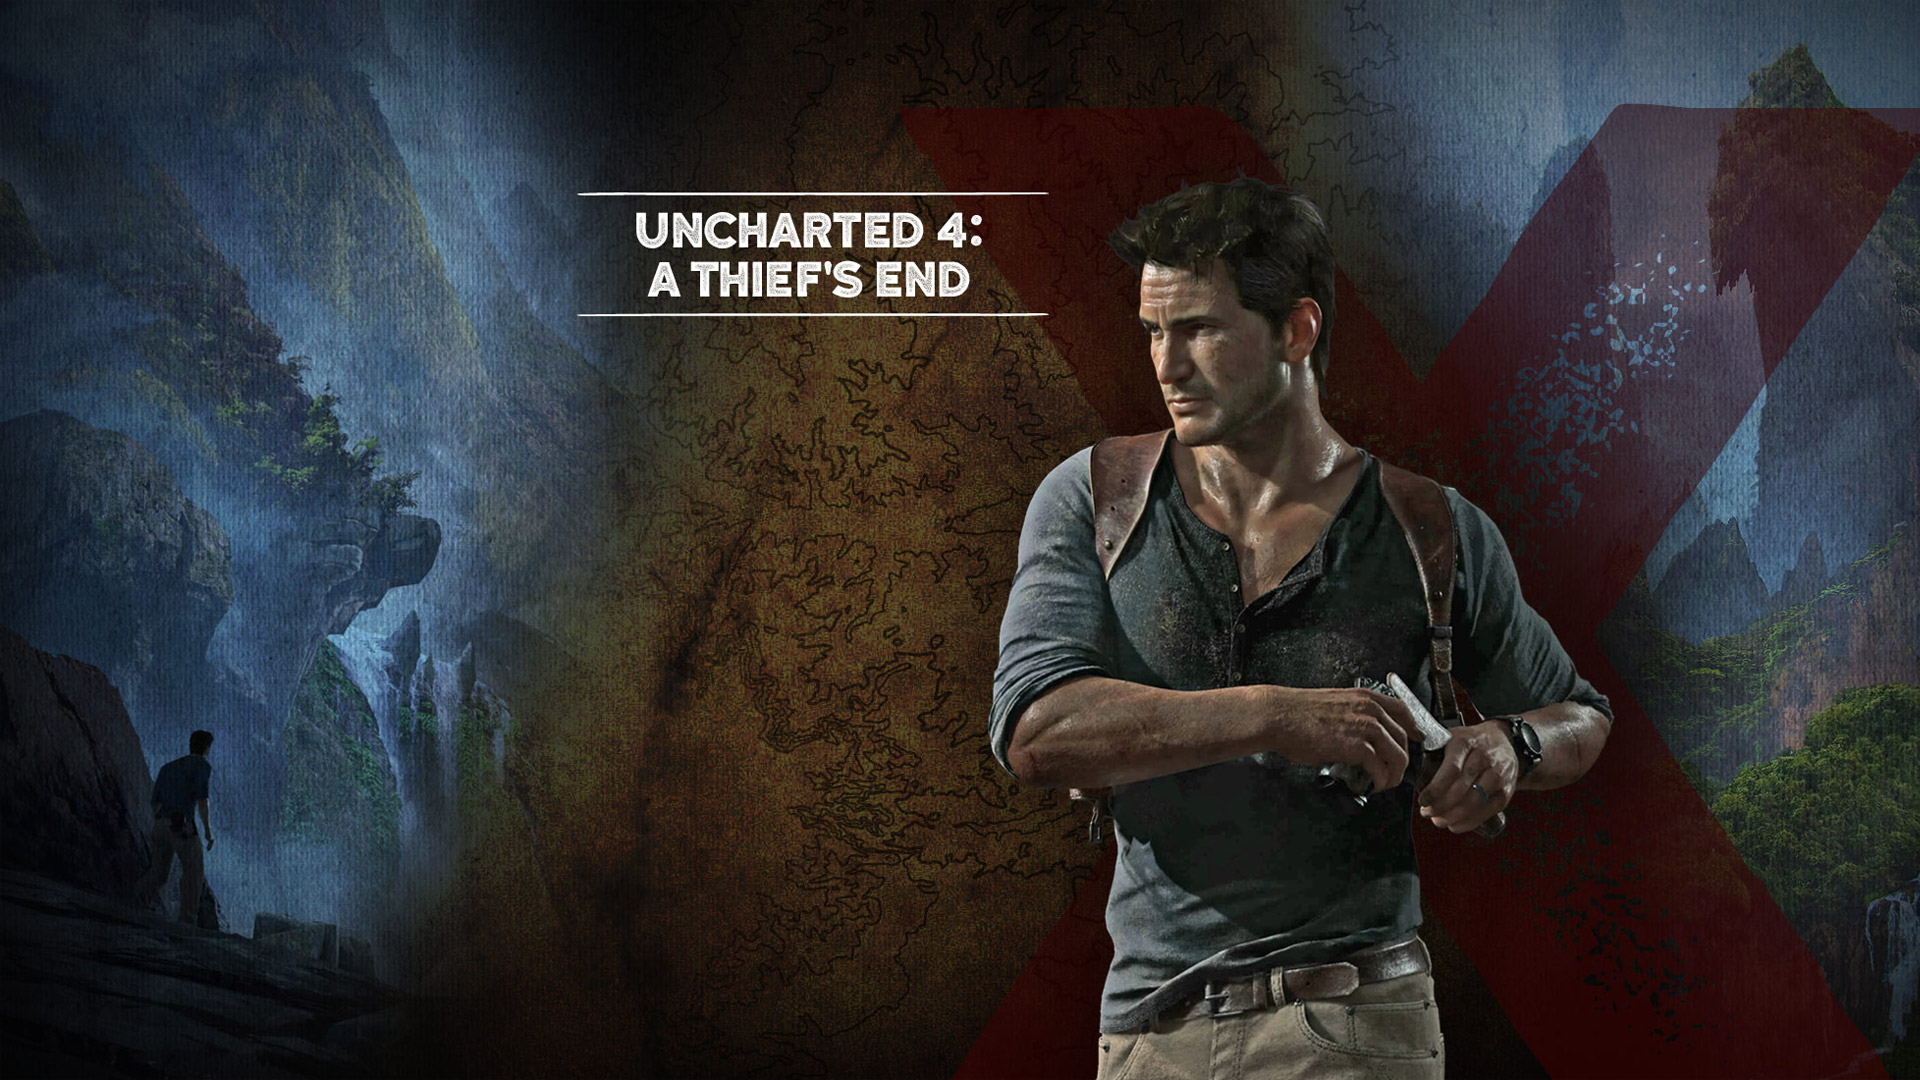 Uncharted 4 A Thief S End Hd Wallpaper Background Image